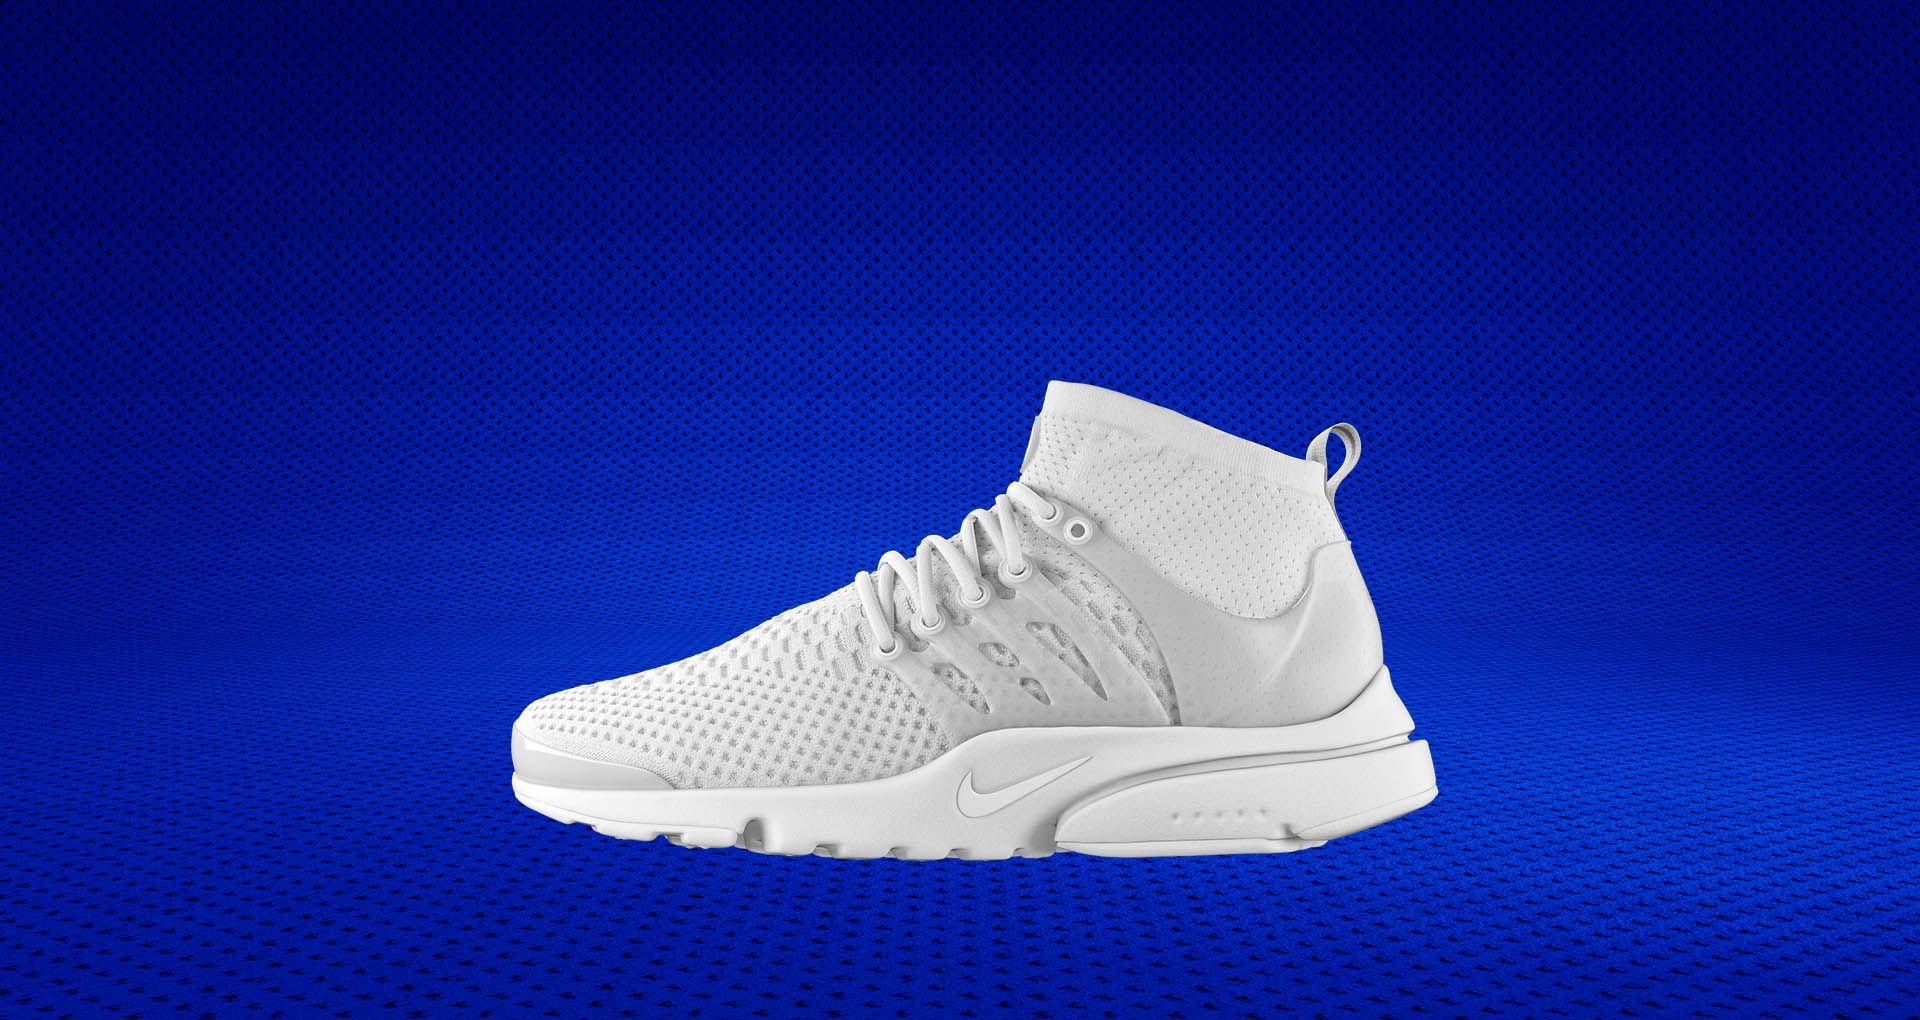 save off 70cc9 7242a Nike Air Presto Ultra Flyknit 'Triple White' Release Date ...